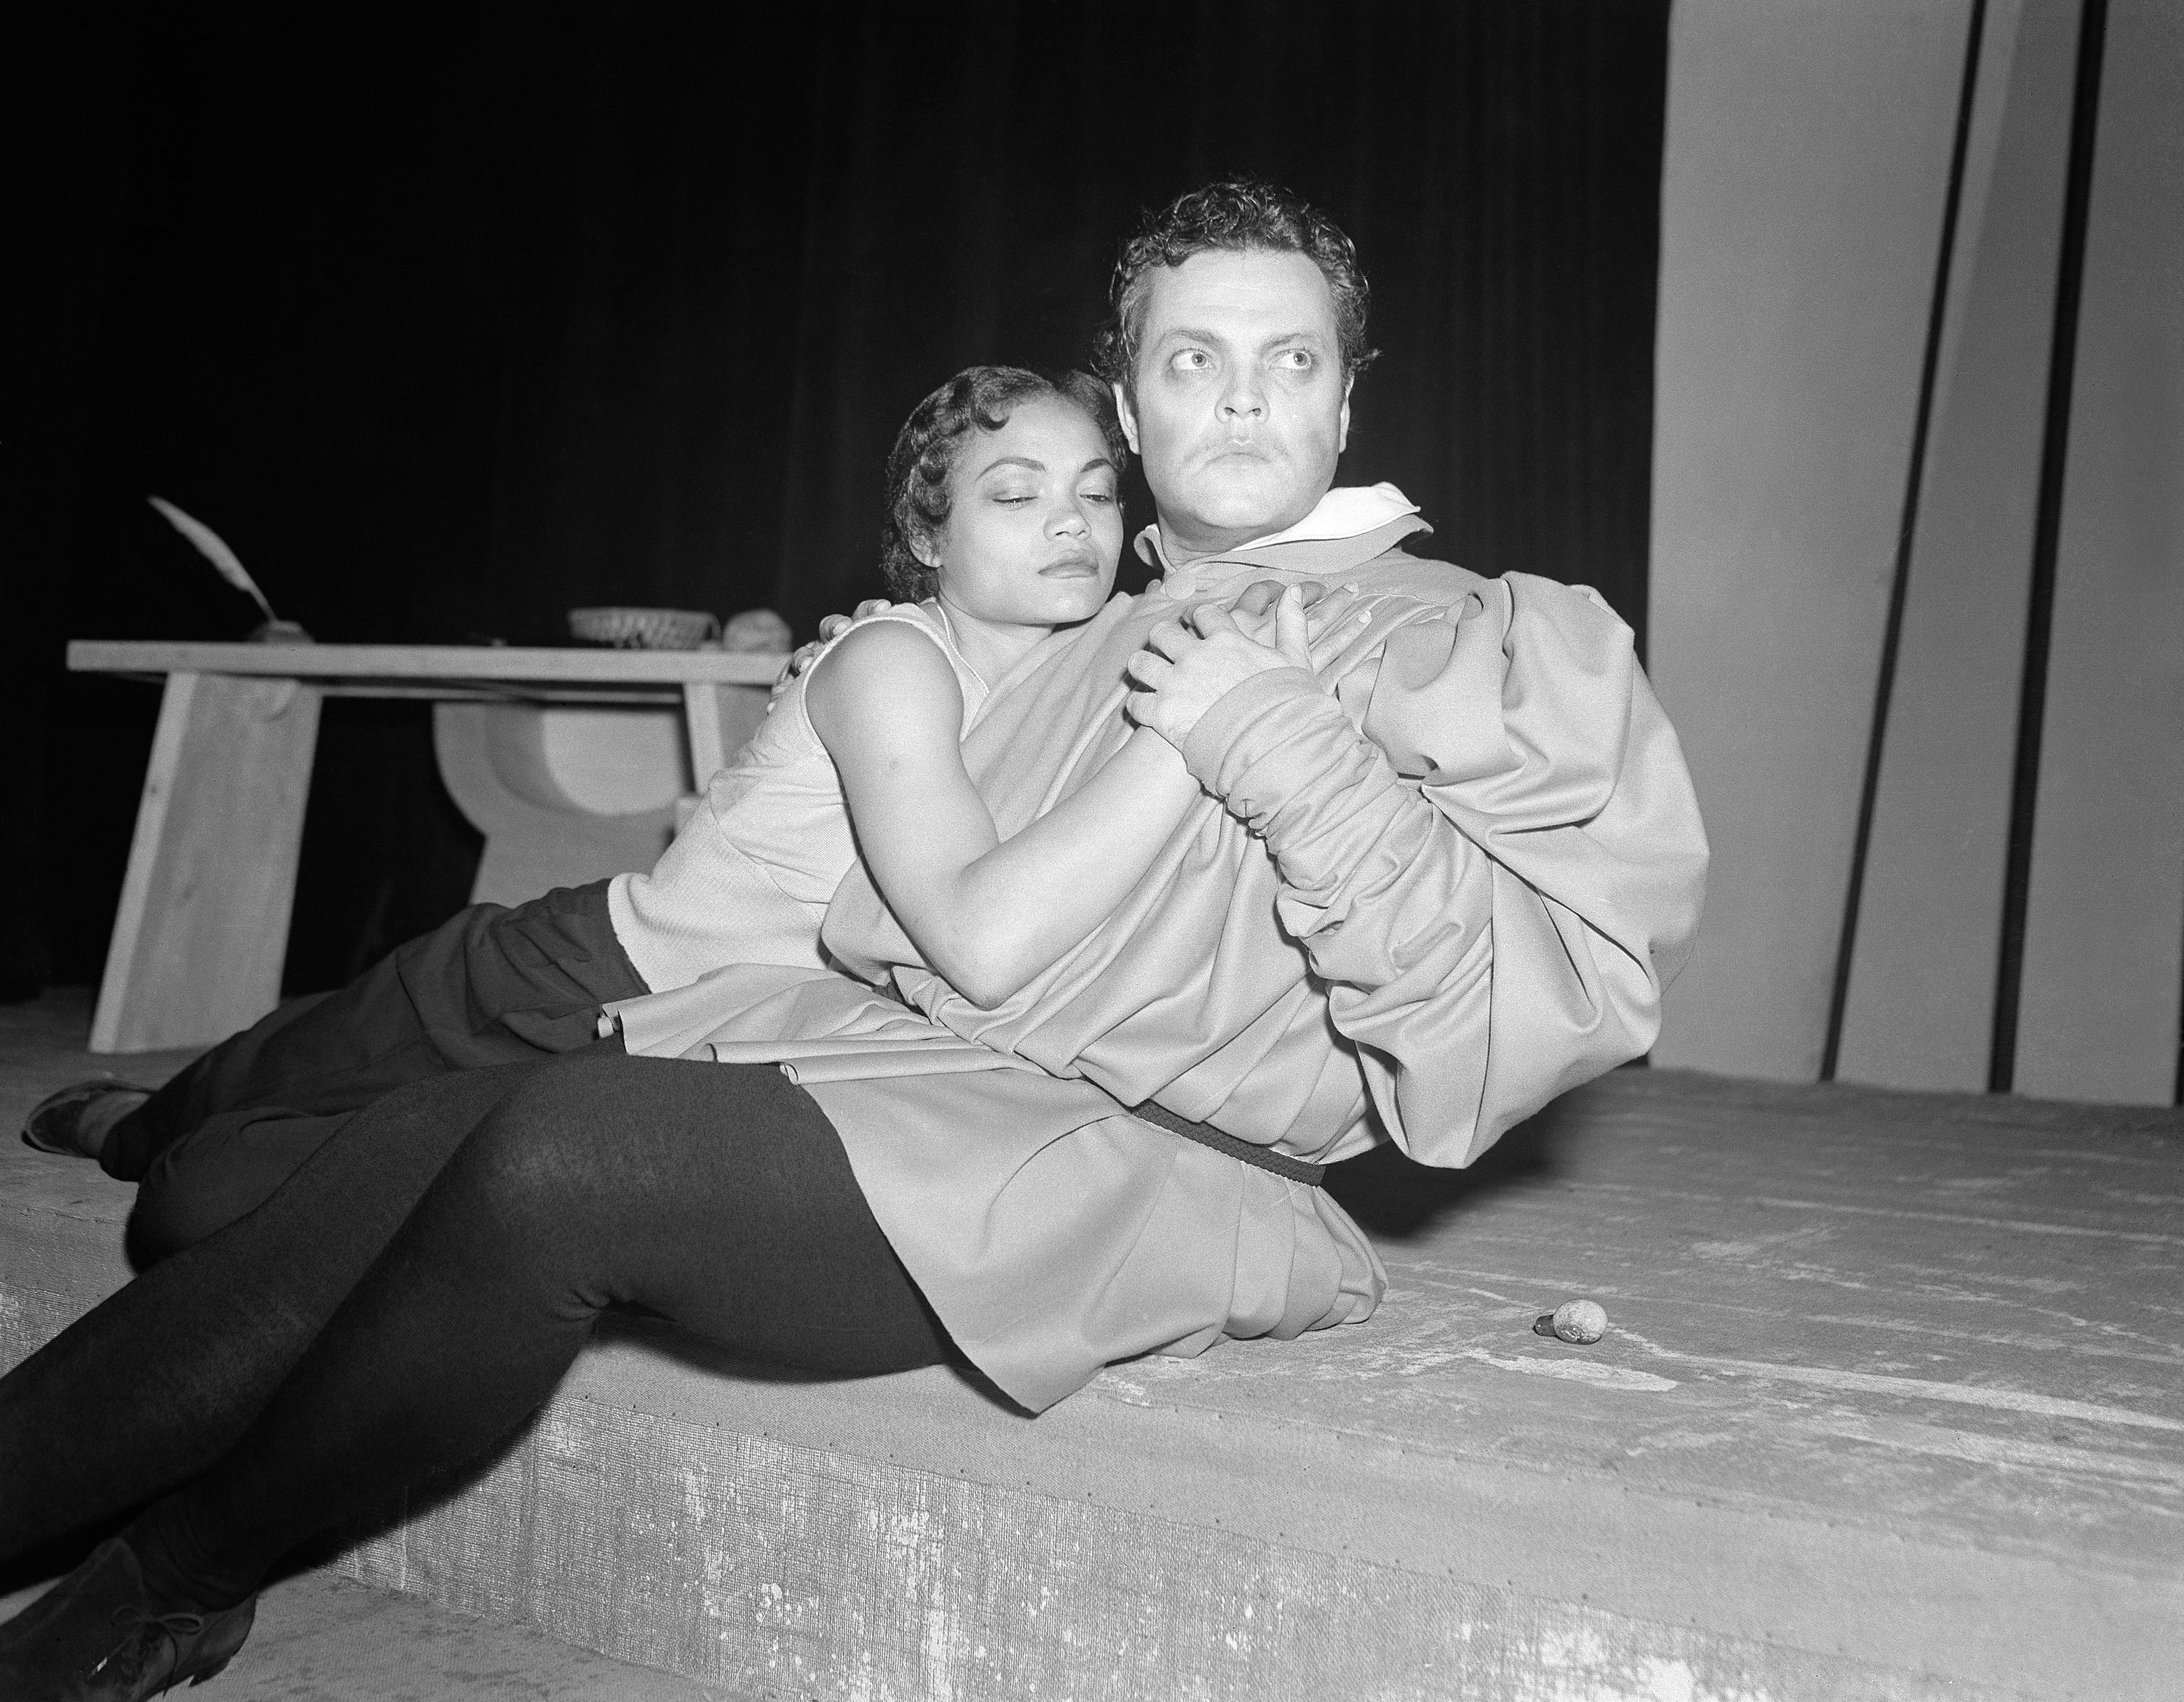 Orson Welles as Faust rehearses with Eartha Kitt as Helen of Troy at the theatre in Paris on June 14, 1950. (AP Photo/Jean Aubry)